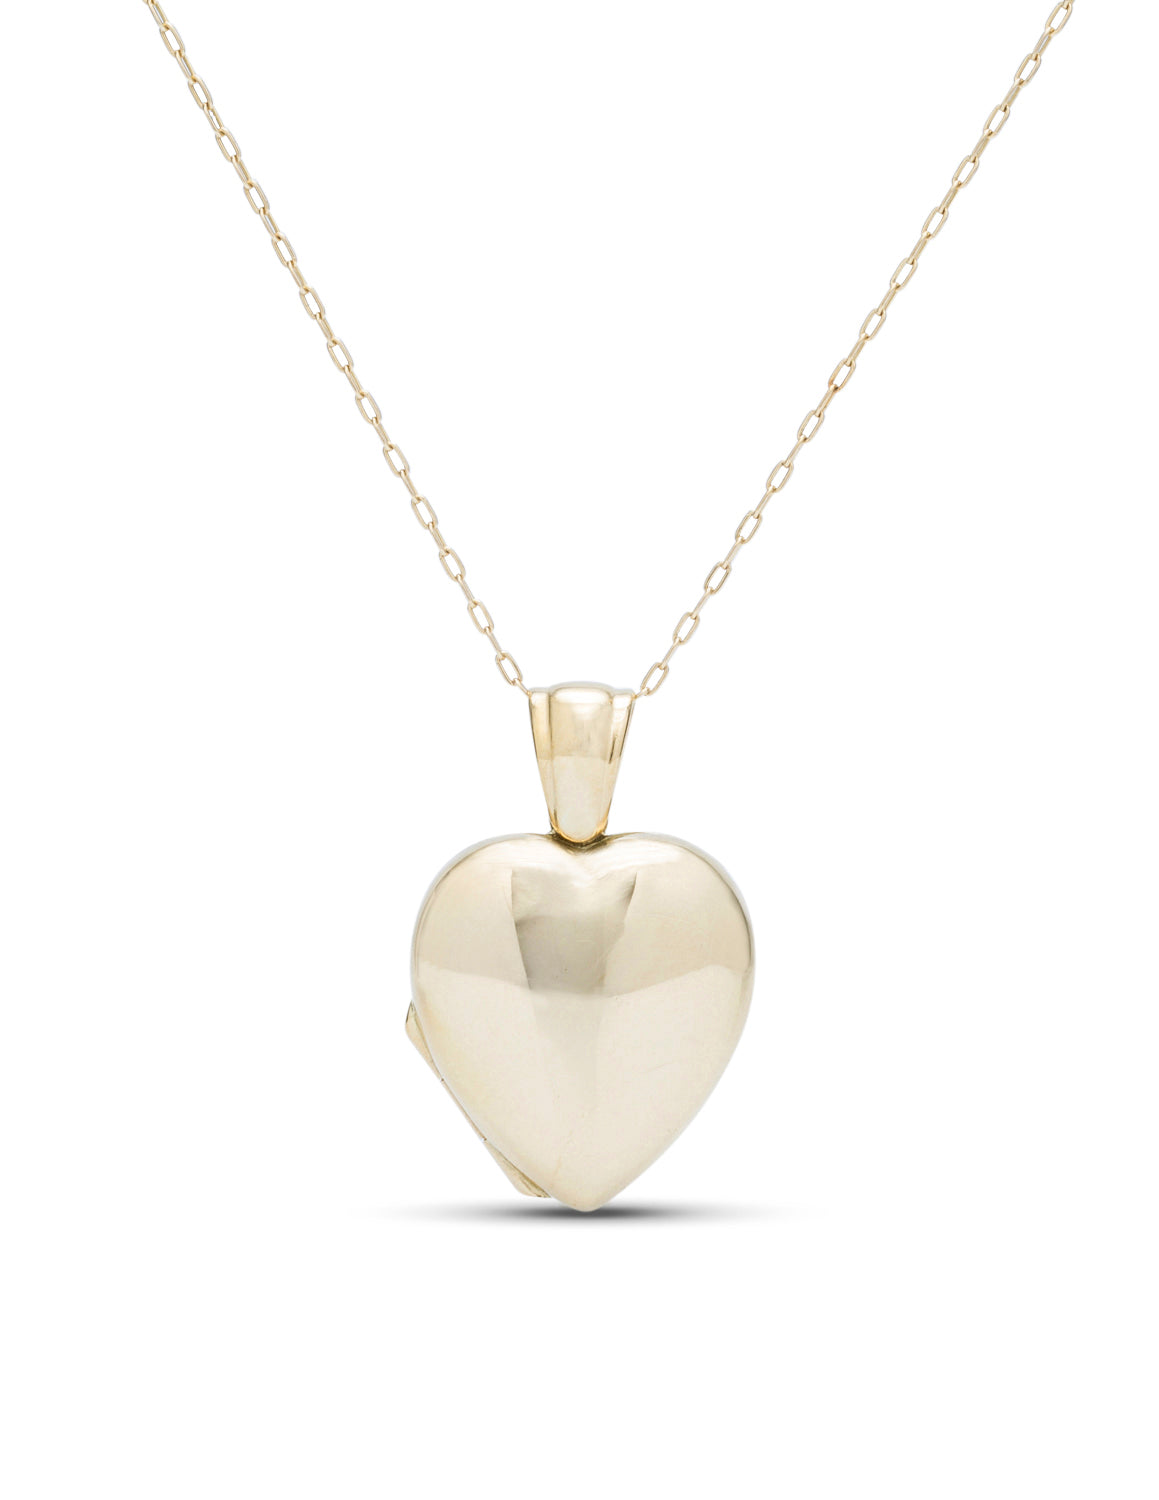 18K Yellow Gold Heart Locket Pendant - Charles Koll Jewellers